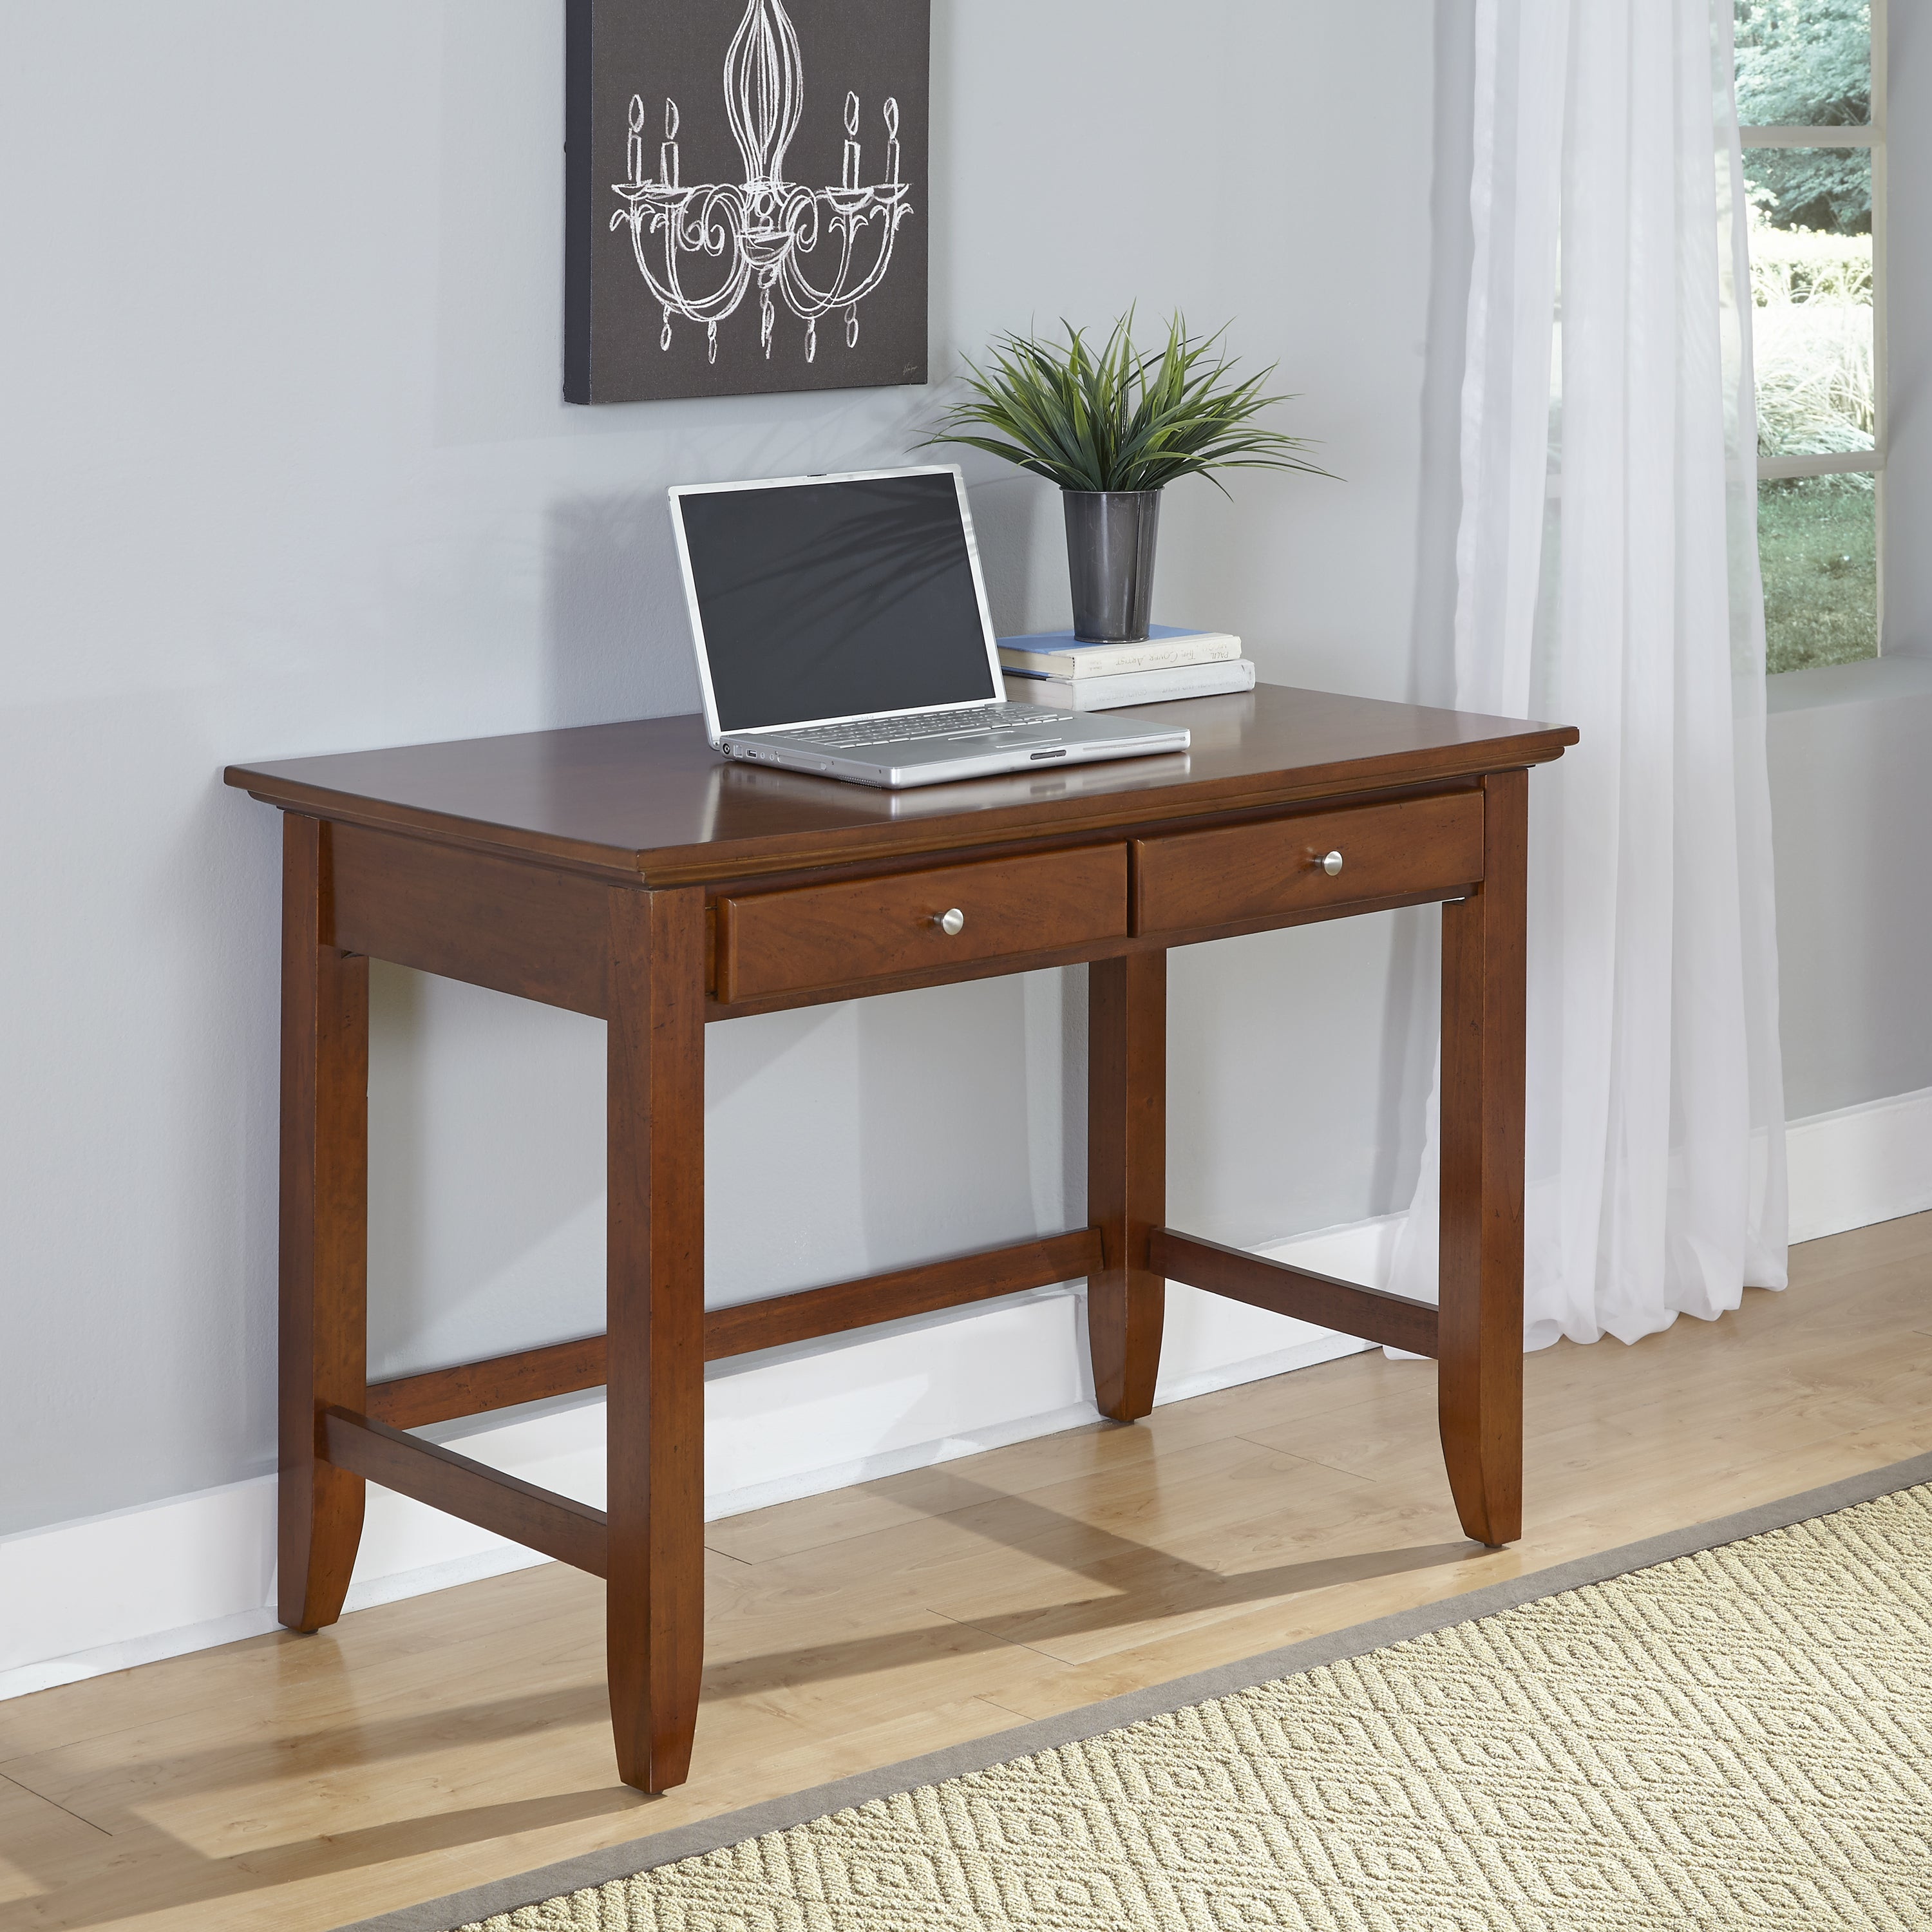 Chesapeake Student Desk by Home Styles (Classic cherry), ...